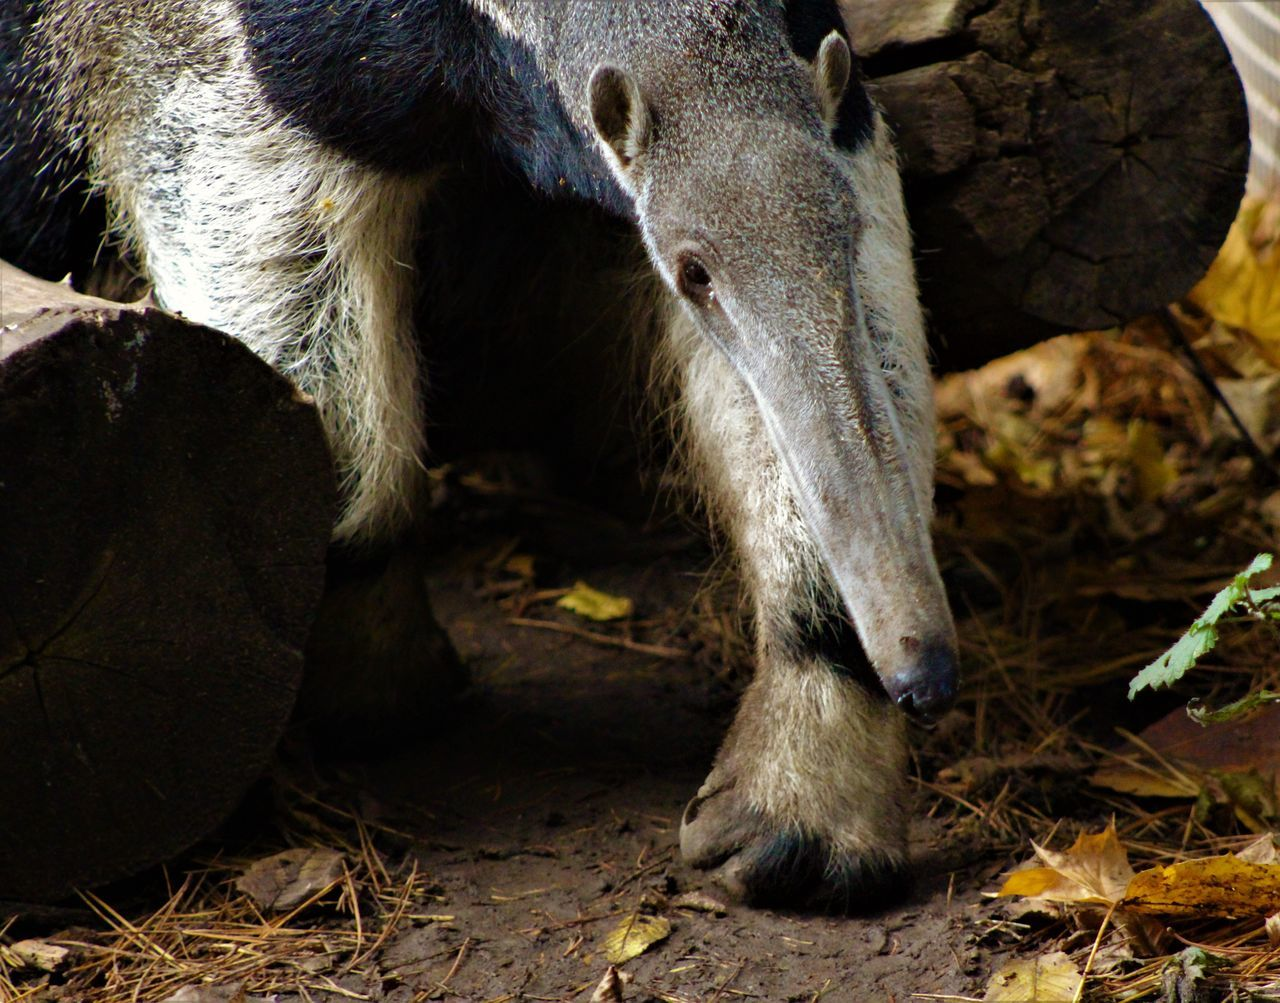 Animal Body Part Animal Head  Animal Themes Animal Wildlife Animals In The Wild Anteater Close-up Day Mammal Nature No People One Animal Outdoors Safari Animals